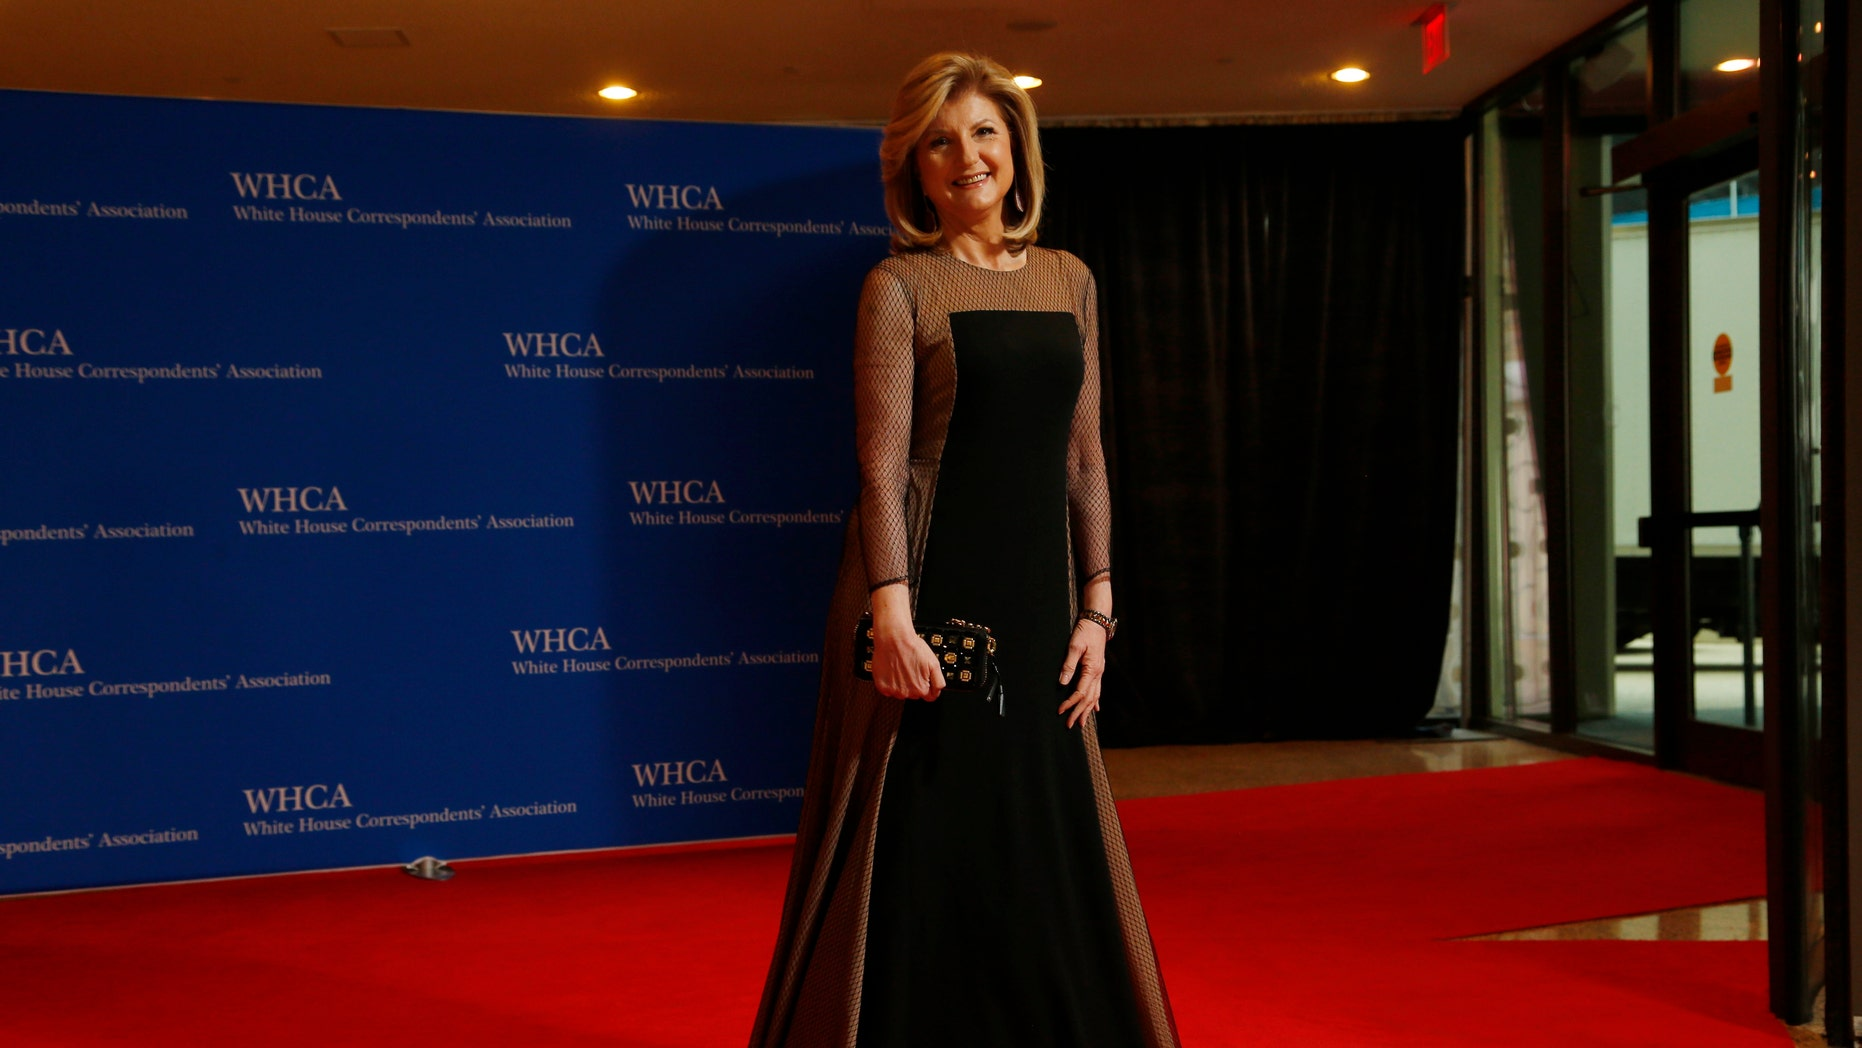 Journalist Arianna Huffington arrives for the annual White House Correspondents' Association dinner in Washington April 25, 2015. REUTERS/Jonathan Ernst  - RTX1A9O4